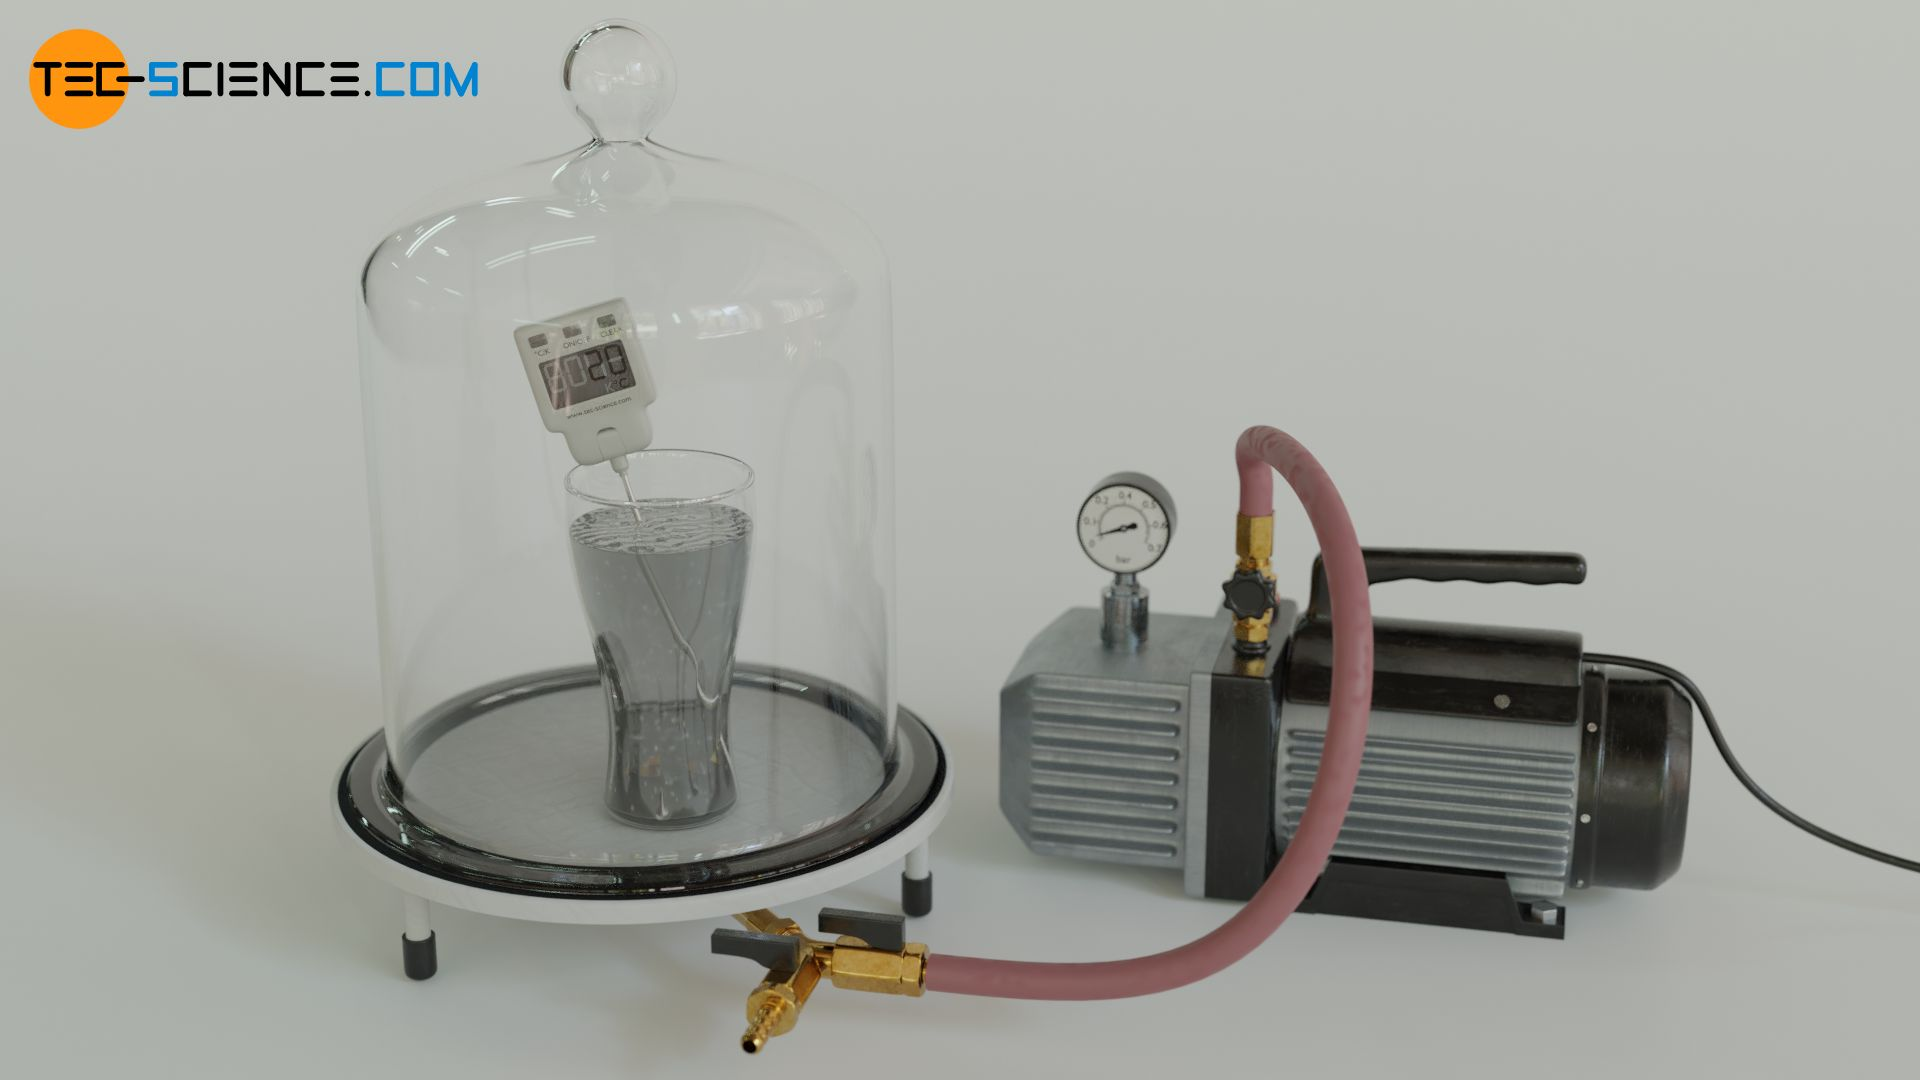 Demonstration of the decrease of the boiling point of water with decreasing pressure using a vacuum pump